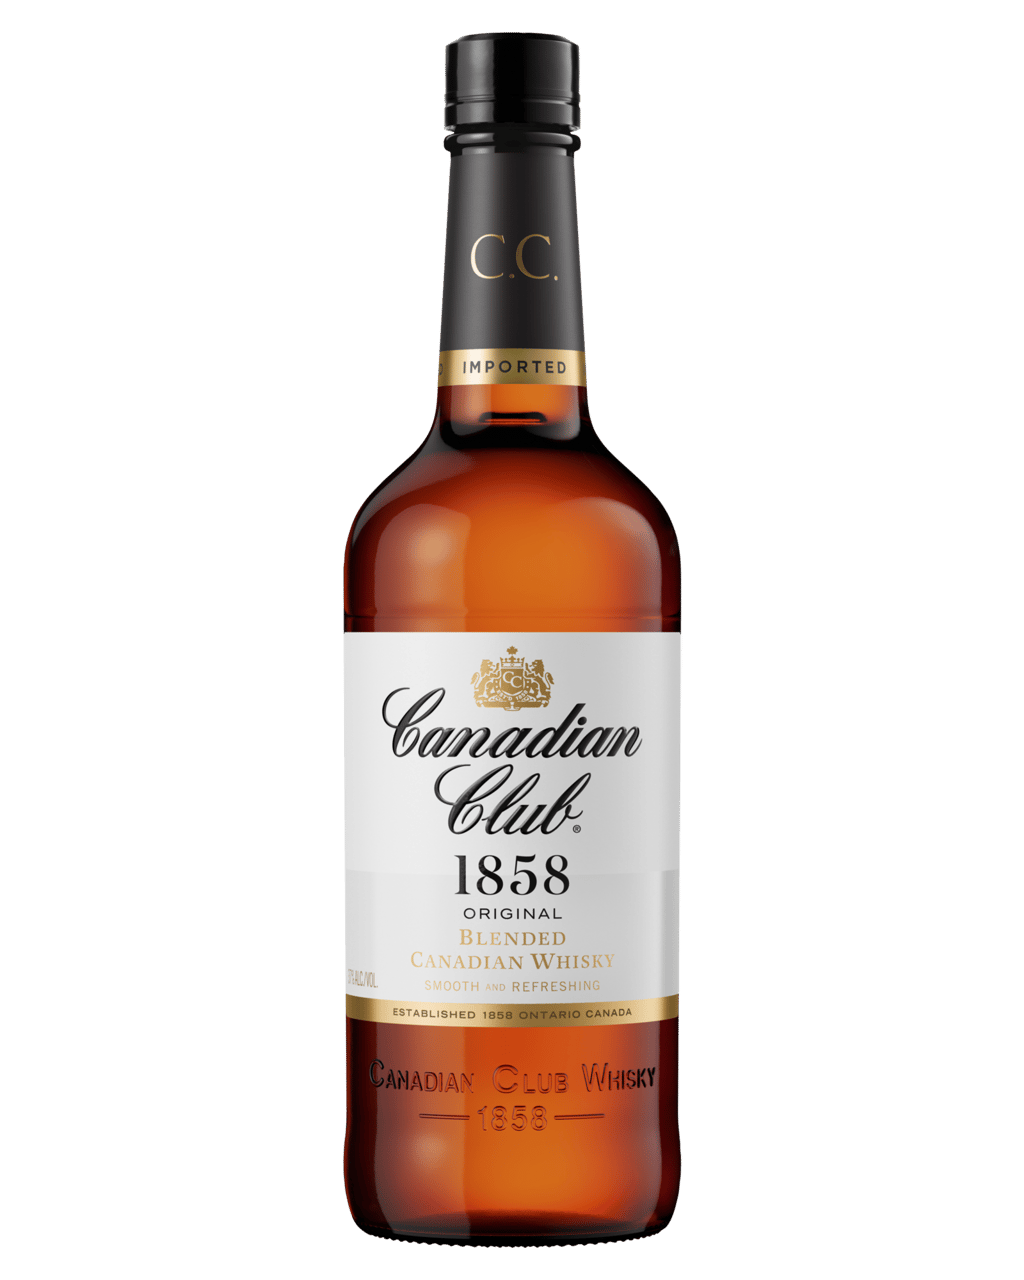 70a81e3b3d Canadian Club Whisky 1L | Dan Murphy's | Buy Wine, Champagne, Beer ...